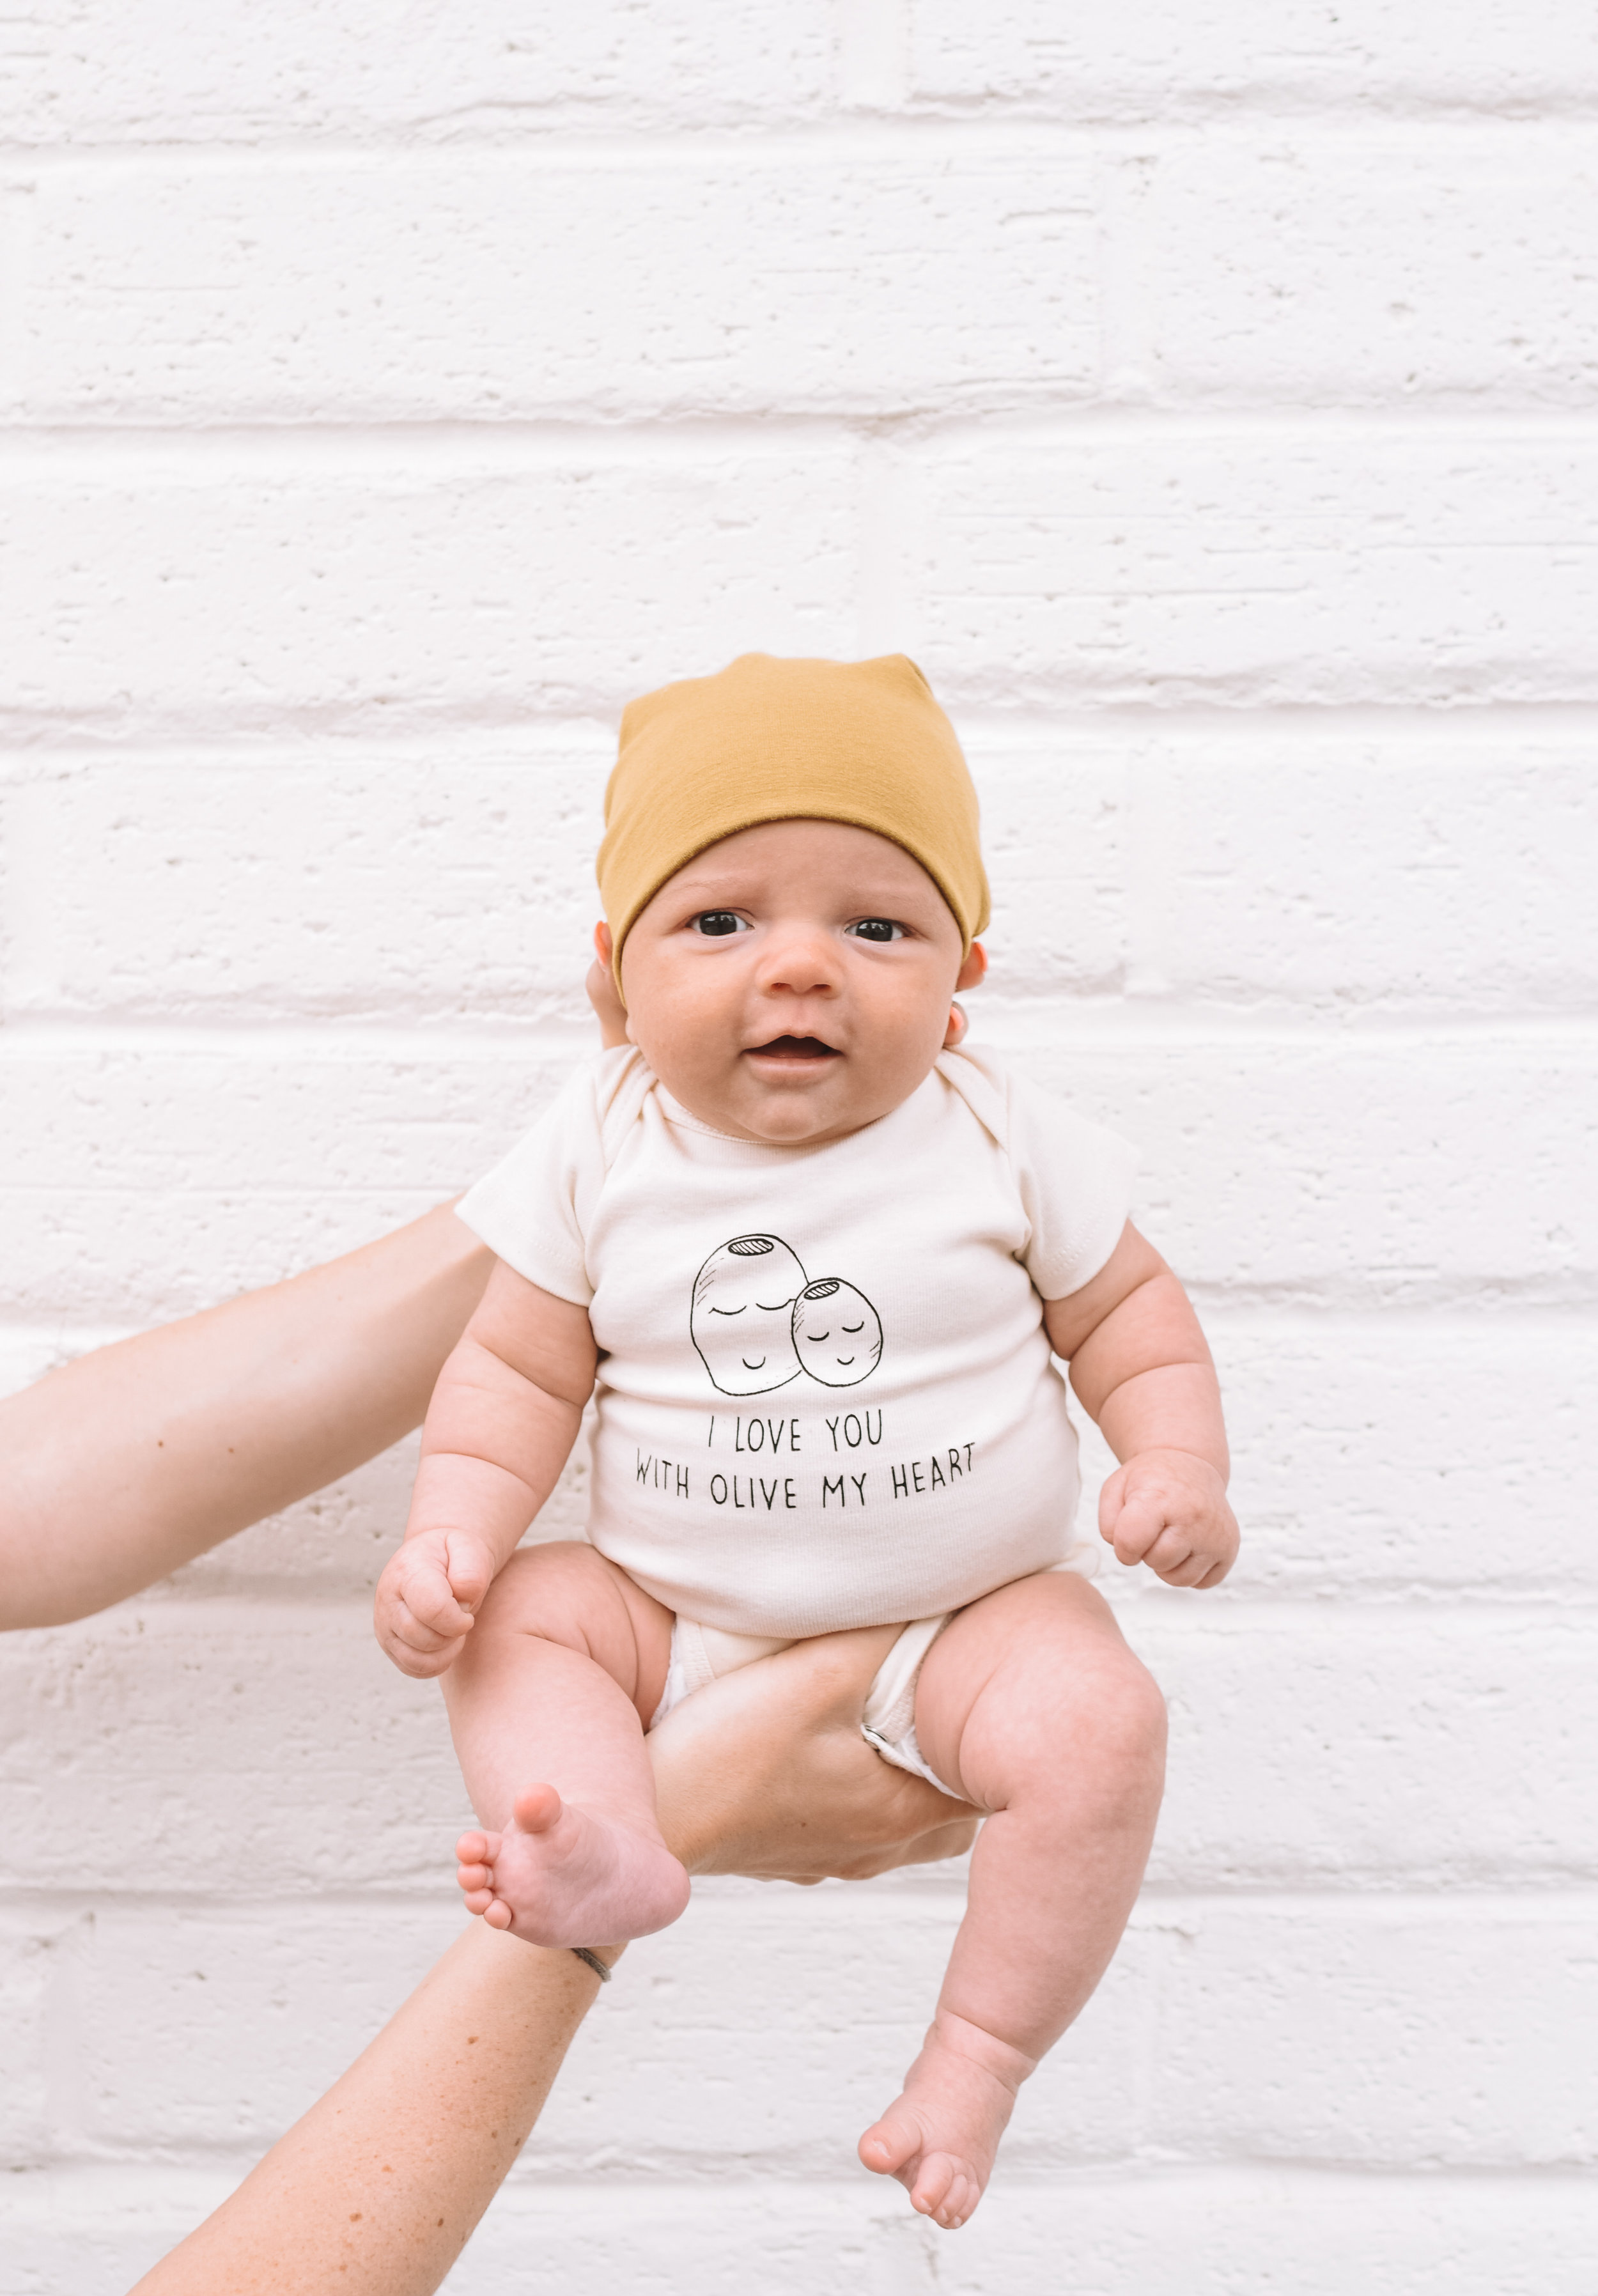 Franky Hallak Two Months Old - The Overwhelmed Mommy Blogger